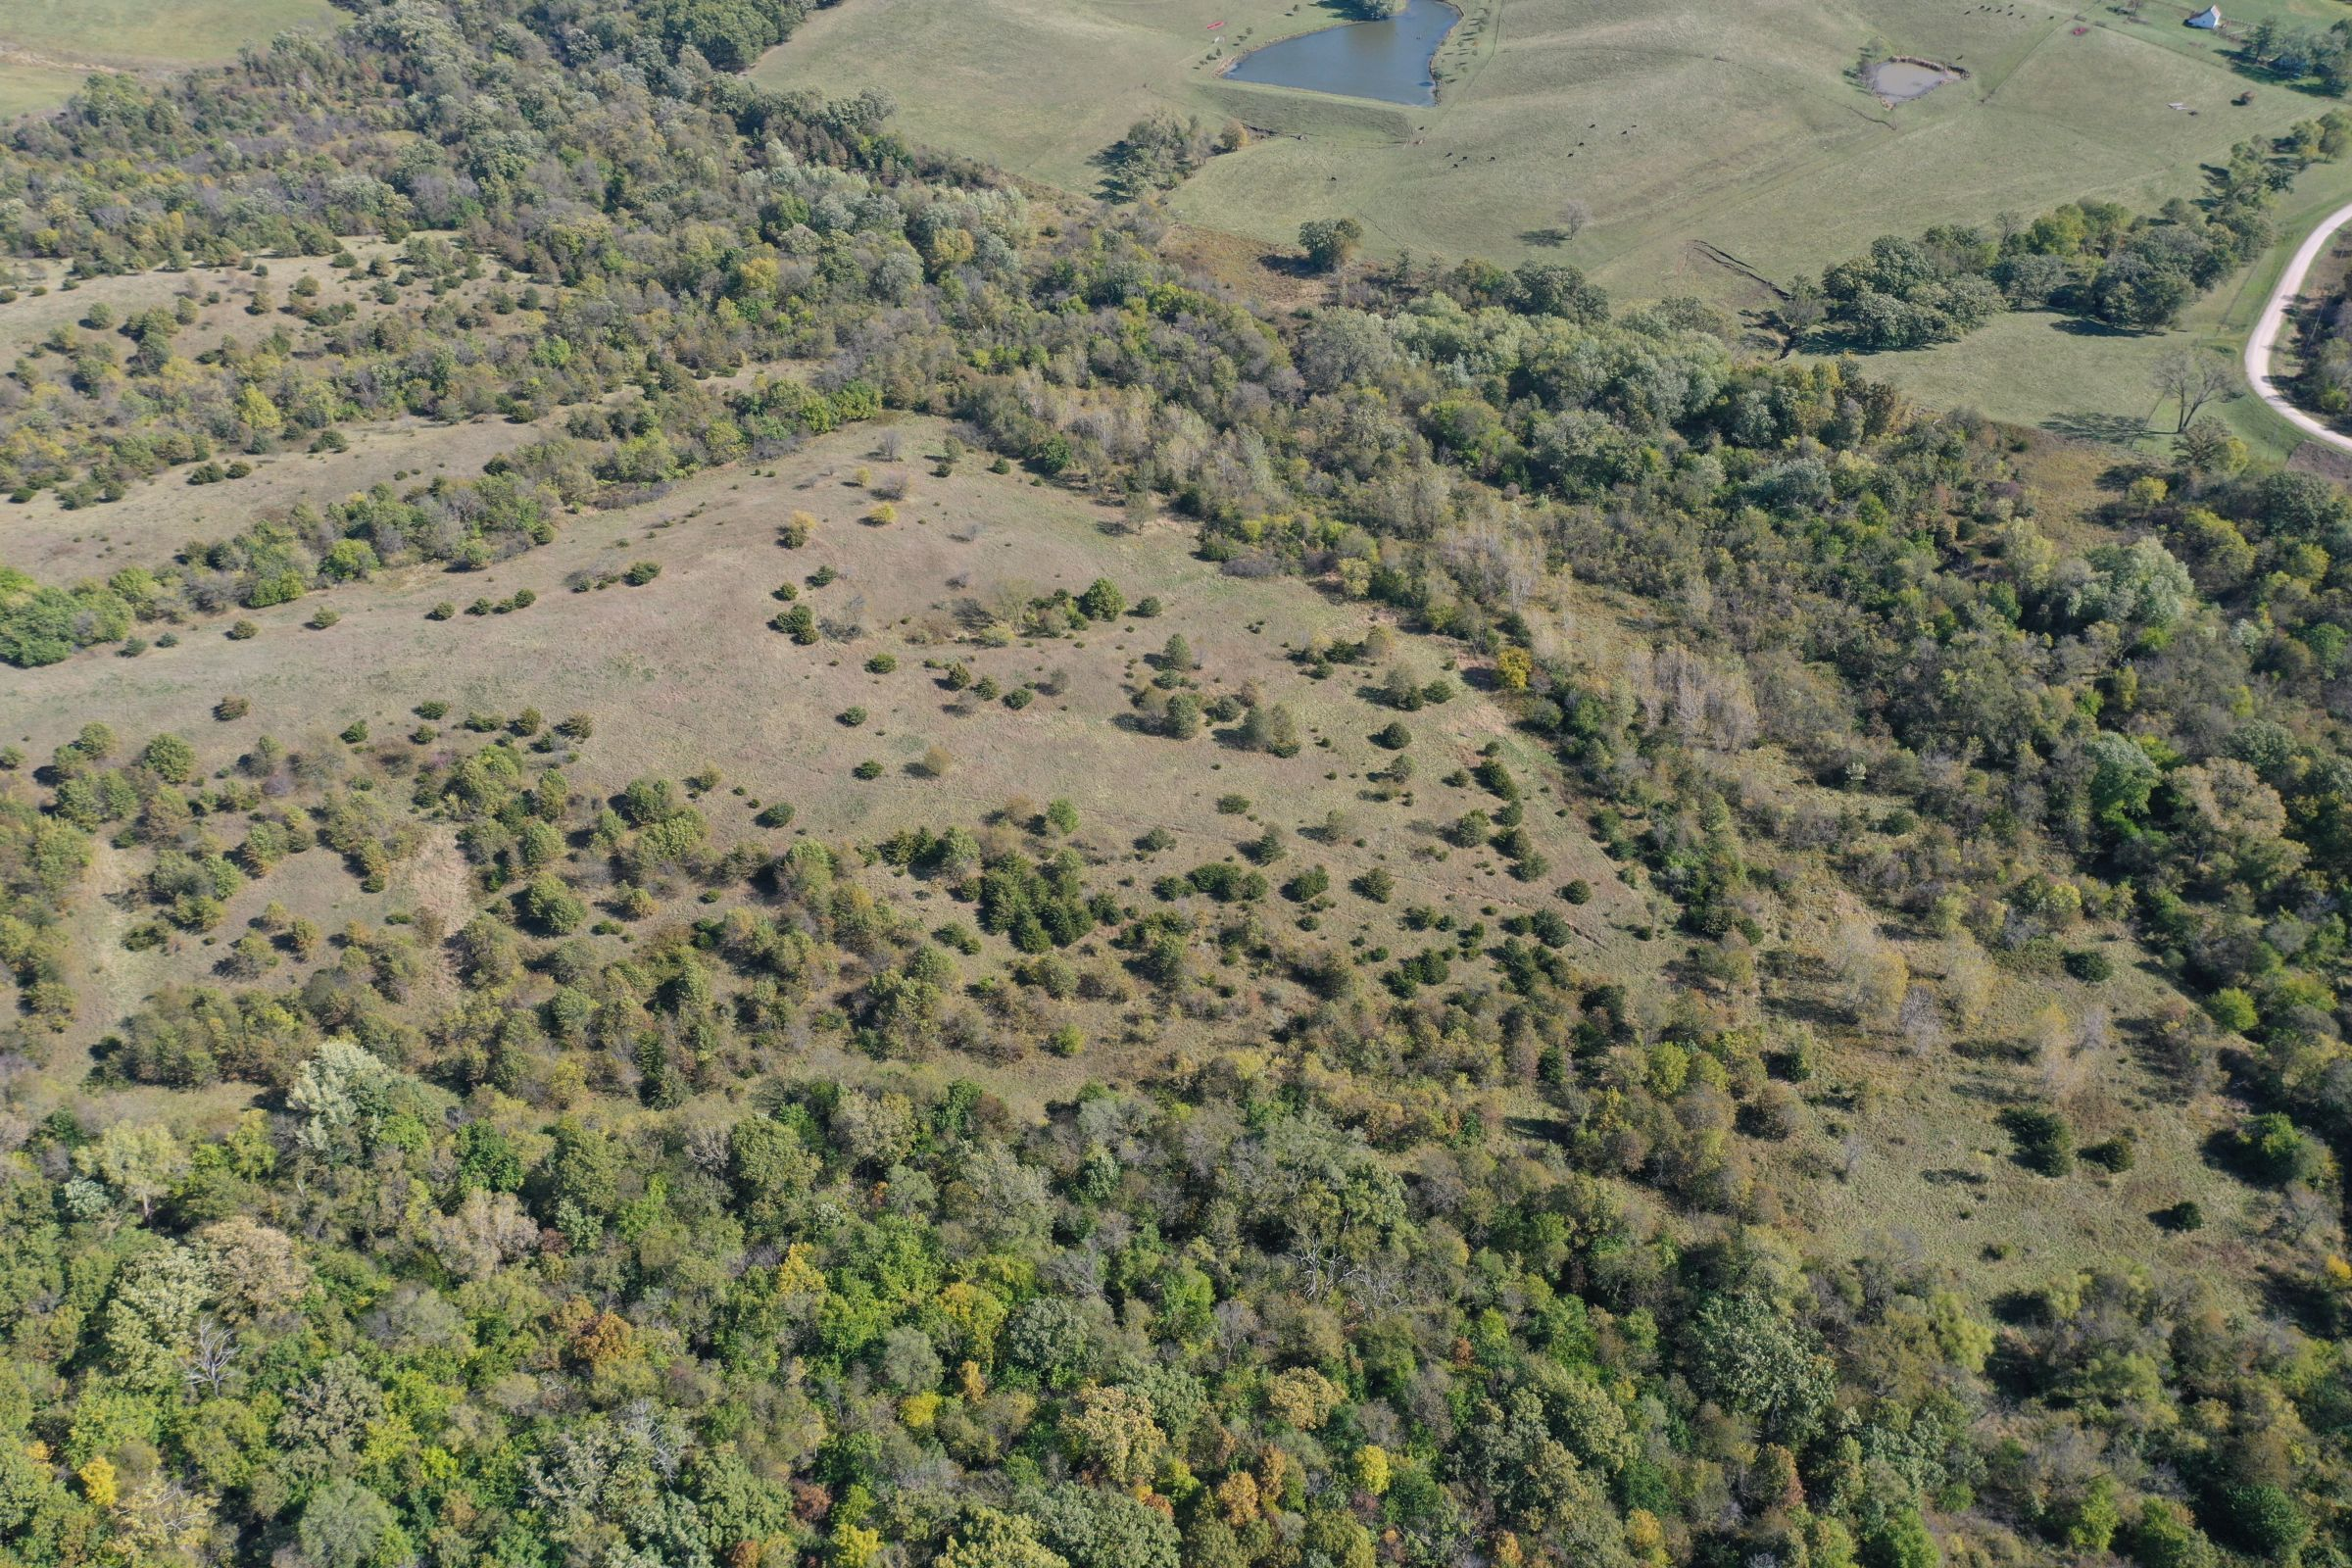 land-lucas-county-iowa-215-acres-listing-number-15206-2-2020-10-09-163812.jpg